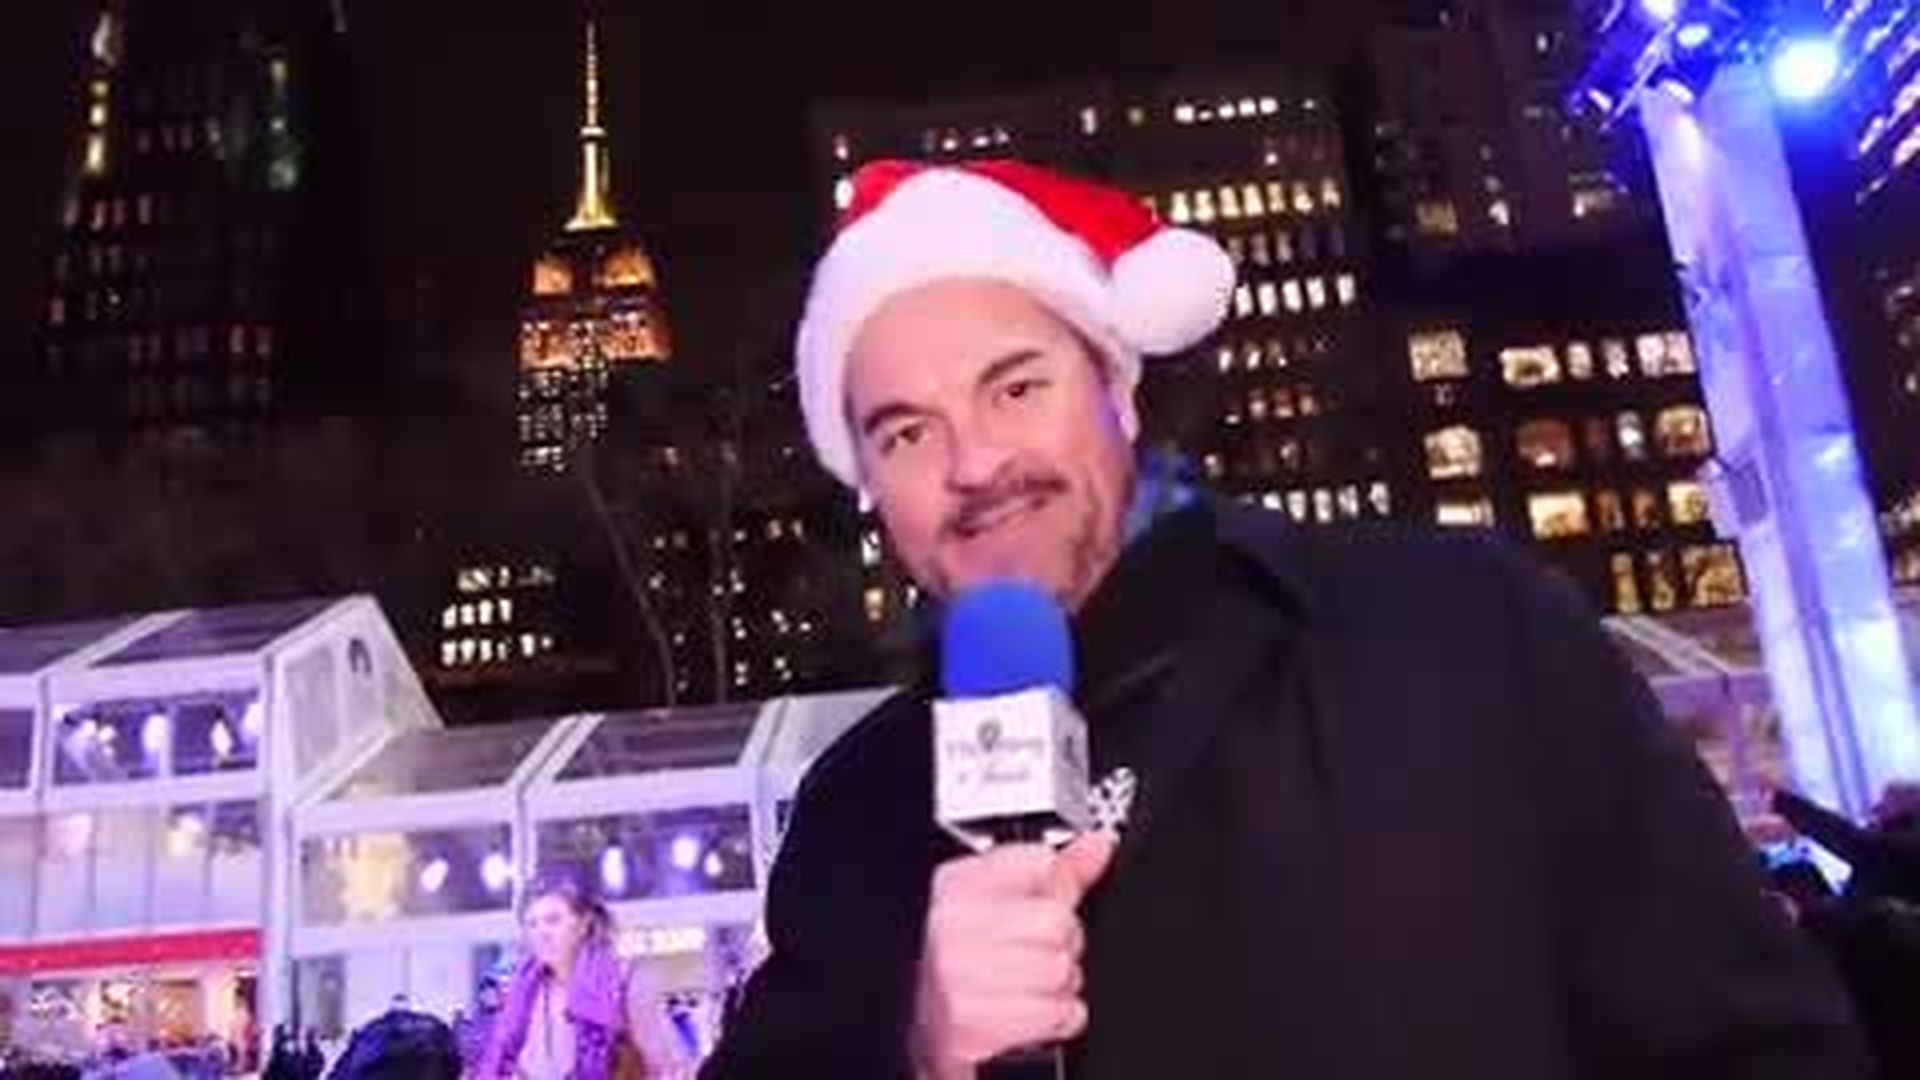 Special Christmas edition TRaveling with T_Ruck 🌎 The nickel tour of Christmas in NYC.